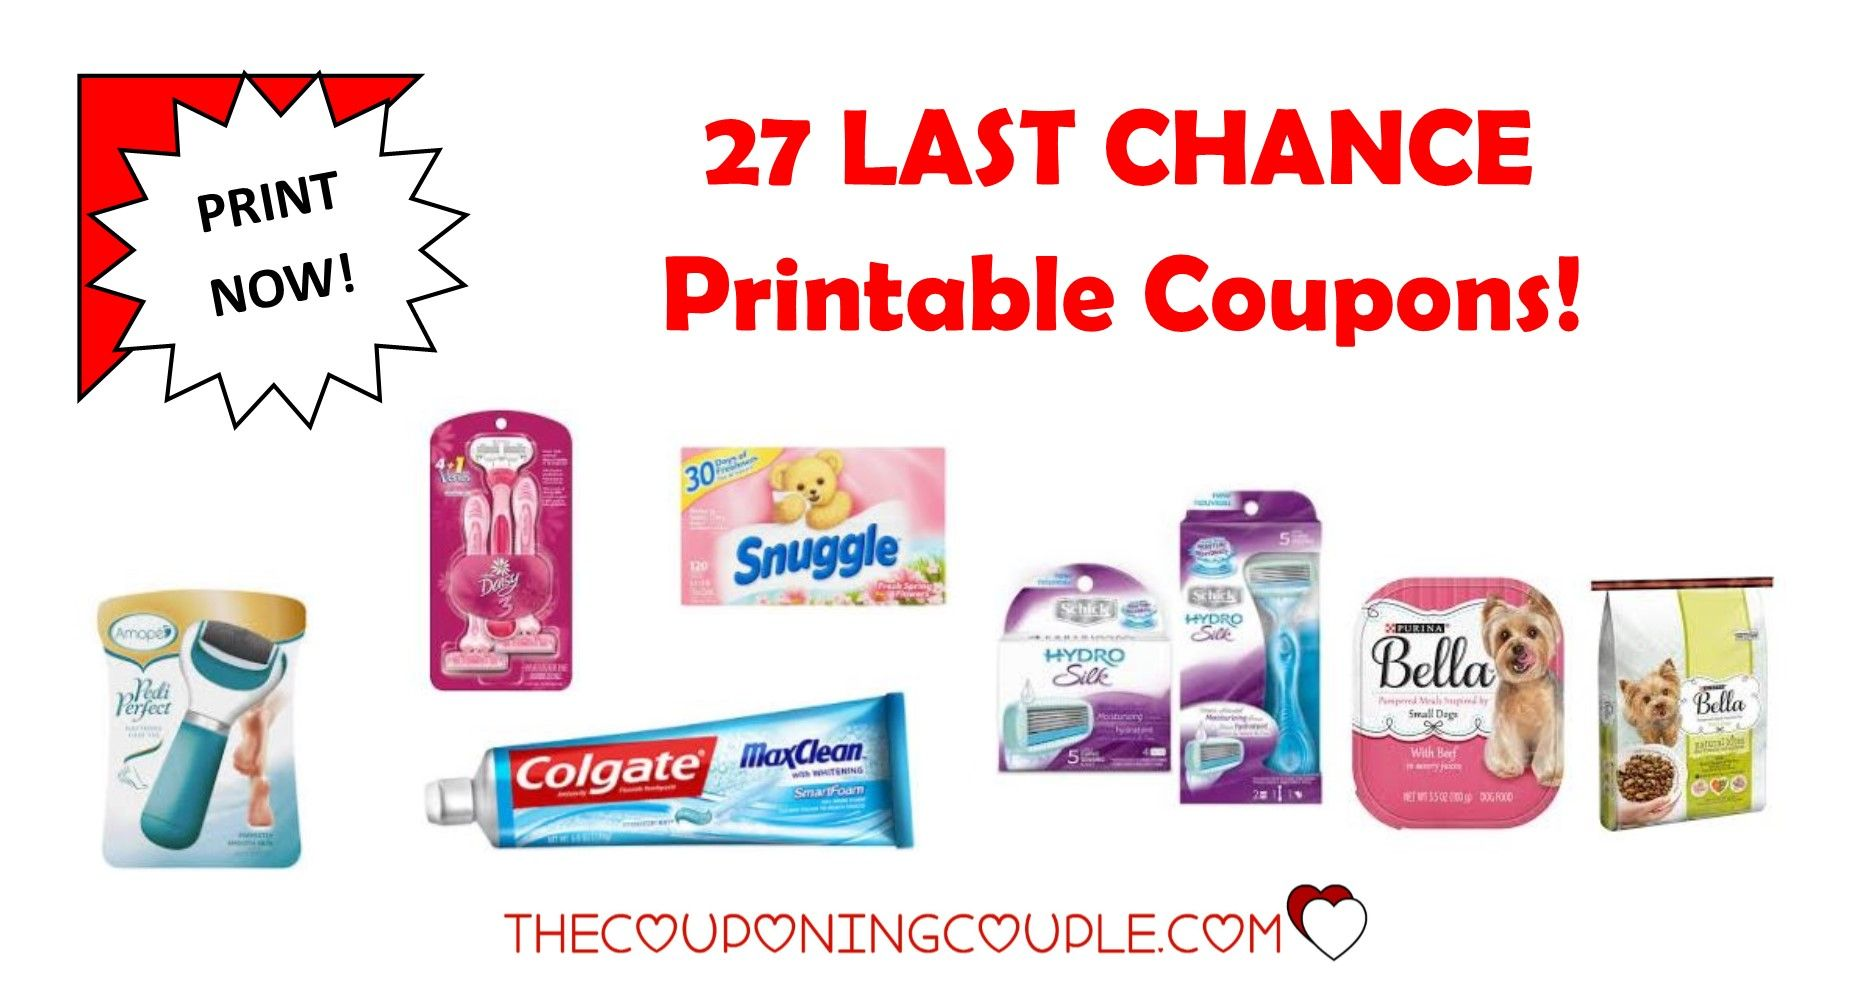 It's just an image of Challenger Friendly's Printable Coupons